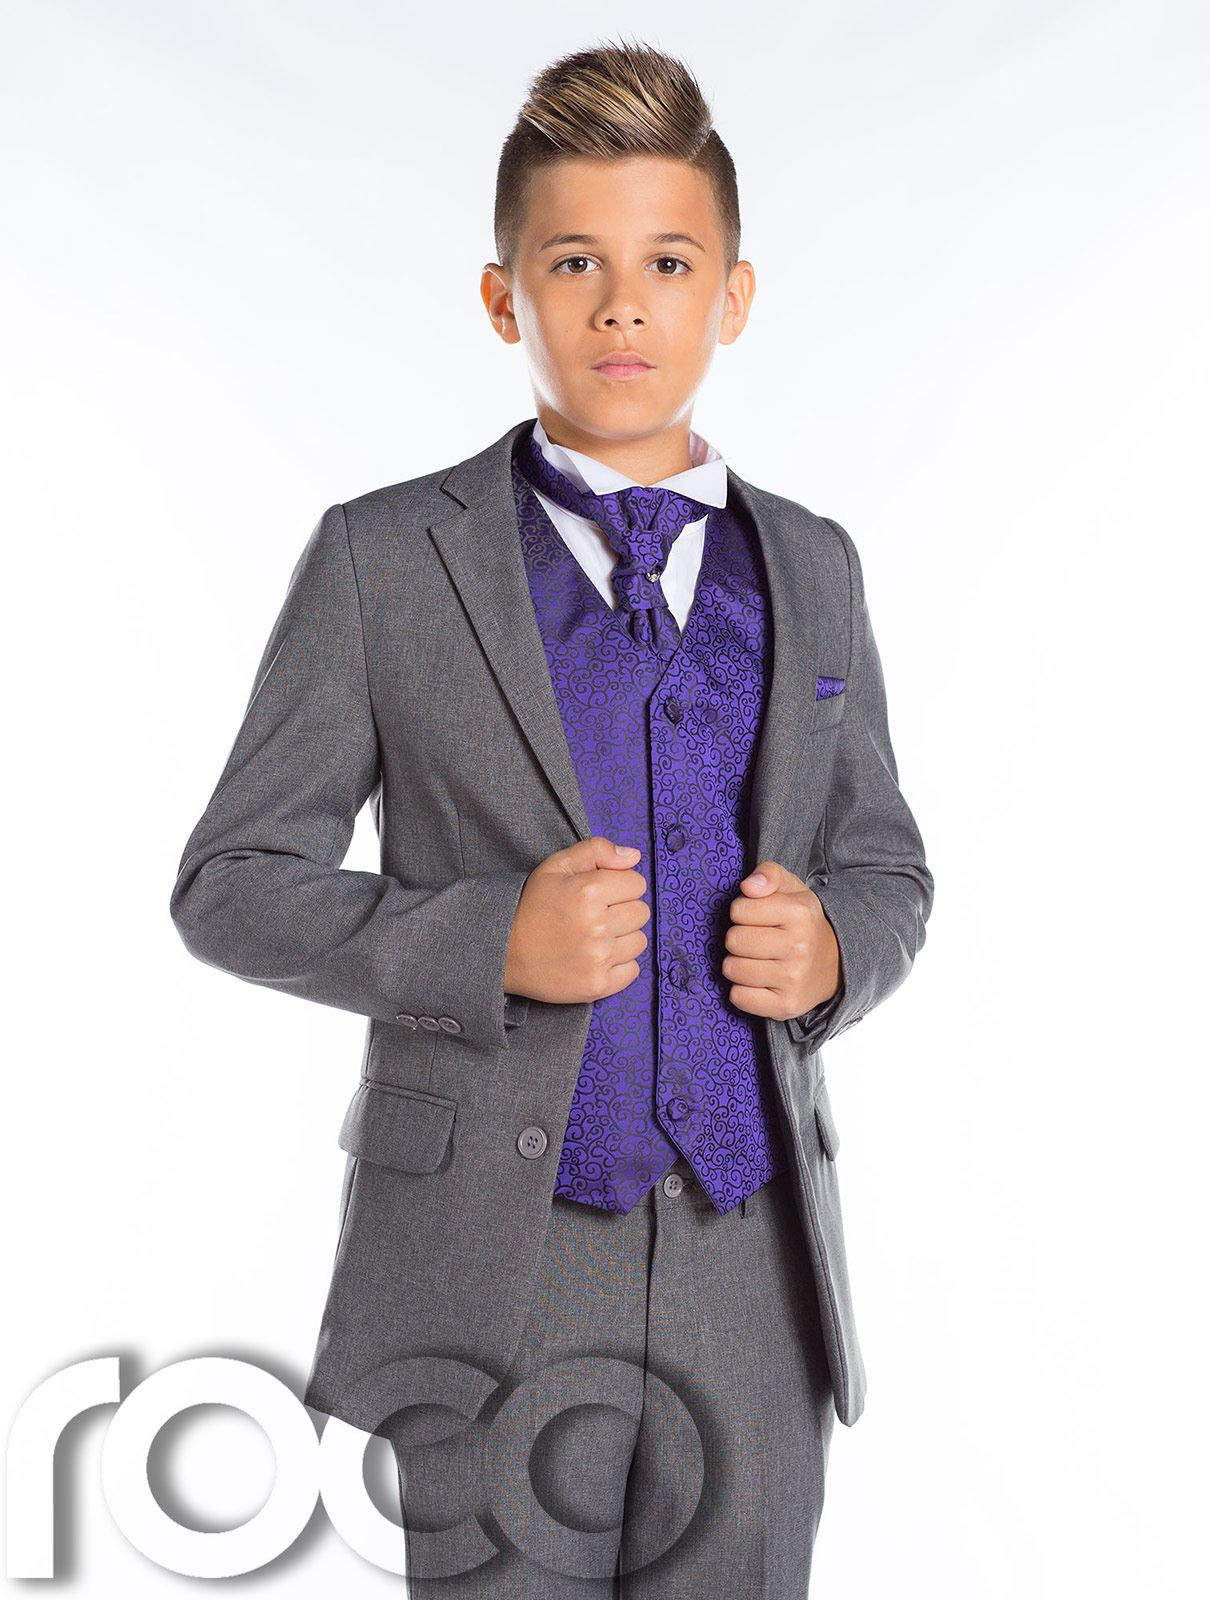 Boys Wedding Suit, Page Boy Suit, Boys Grey Suit, Grey Slim Fit ...